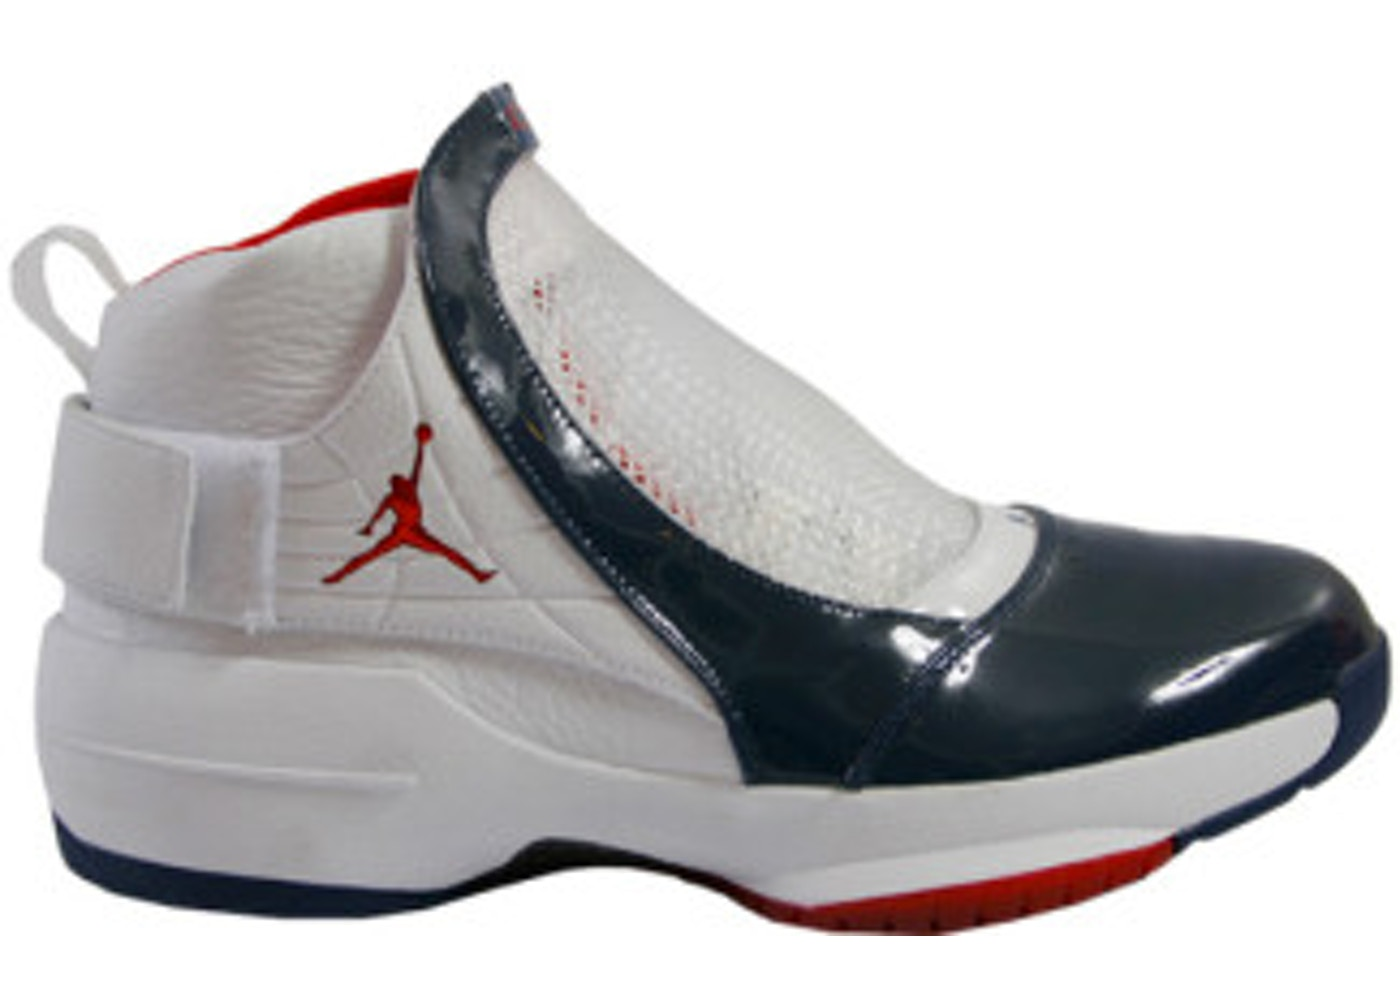 6f924627aa04 Buy Air Jordan 19 Shoes   Deadstock Sneakers